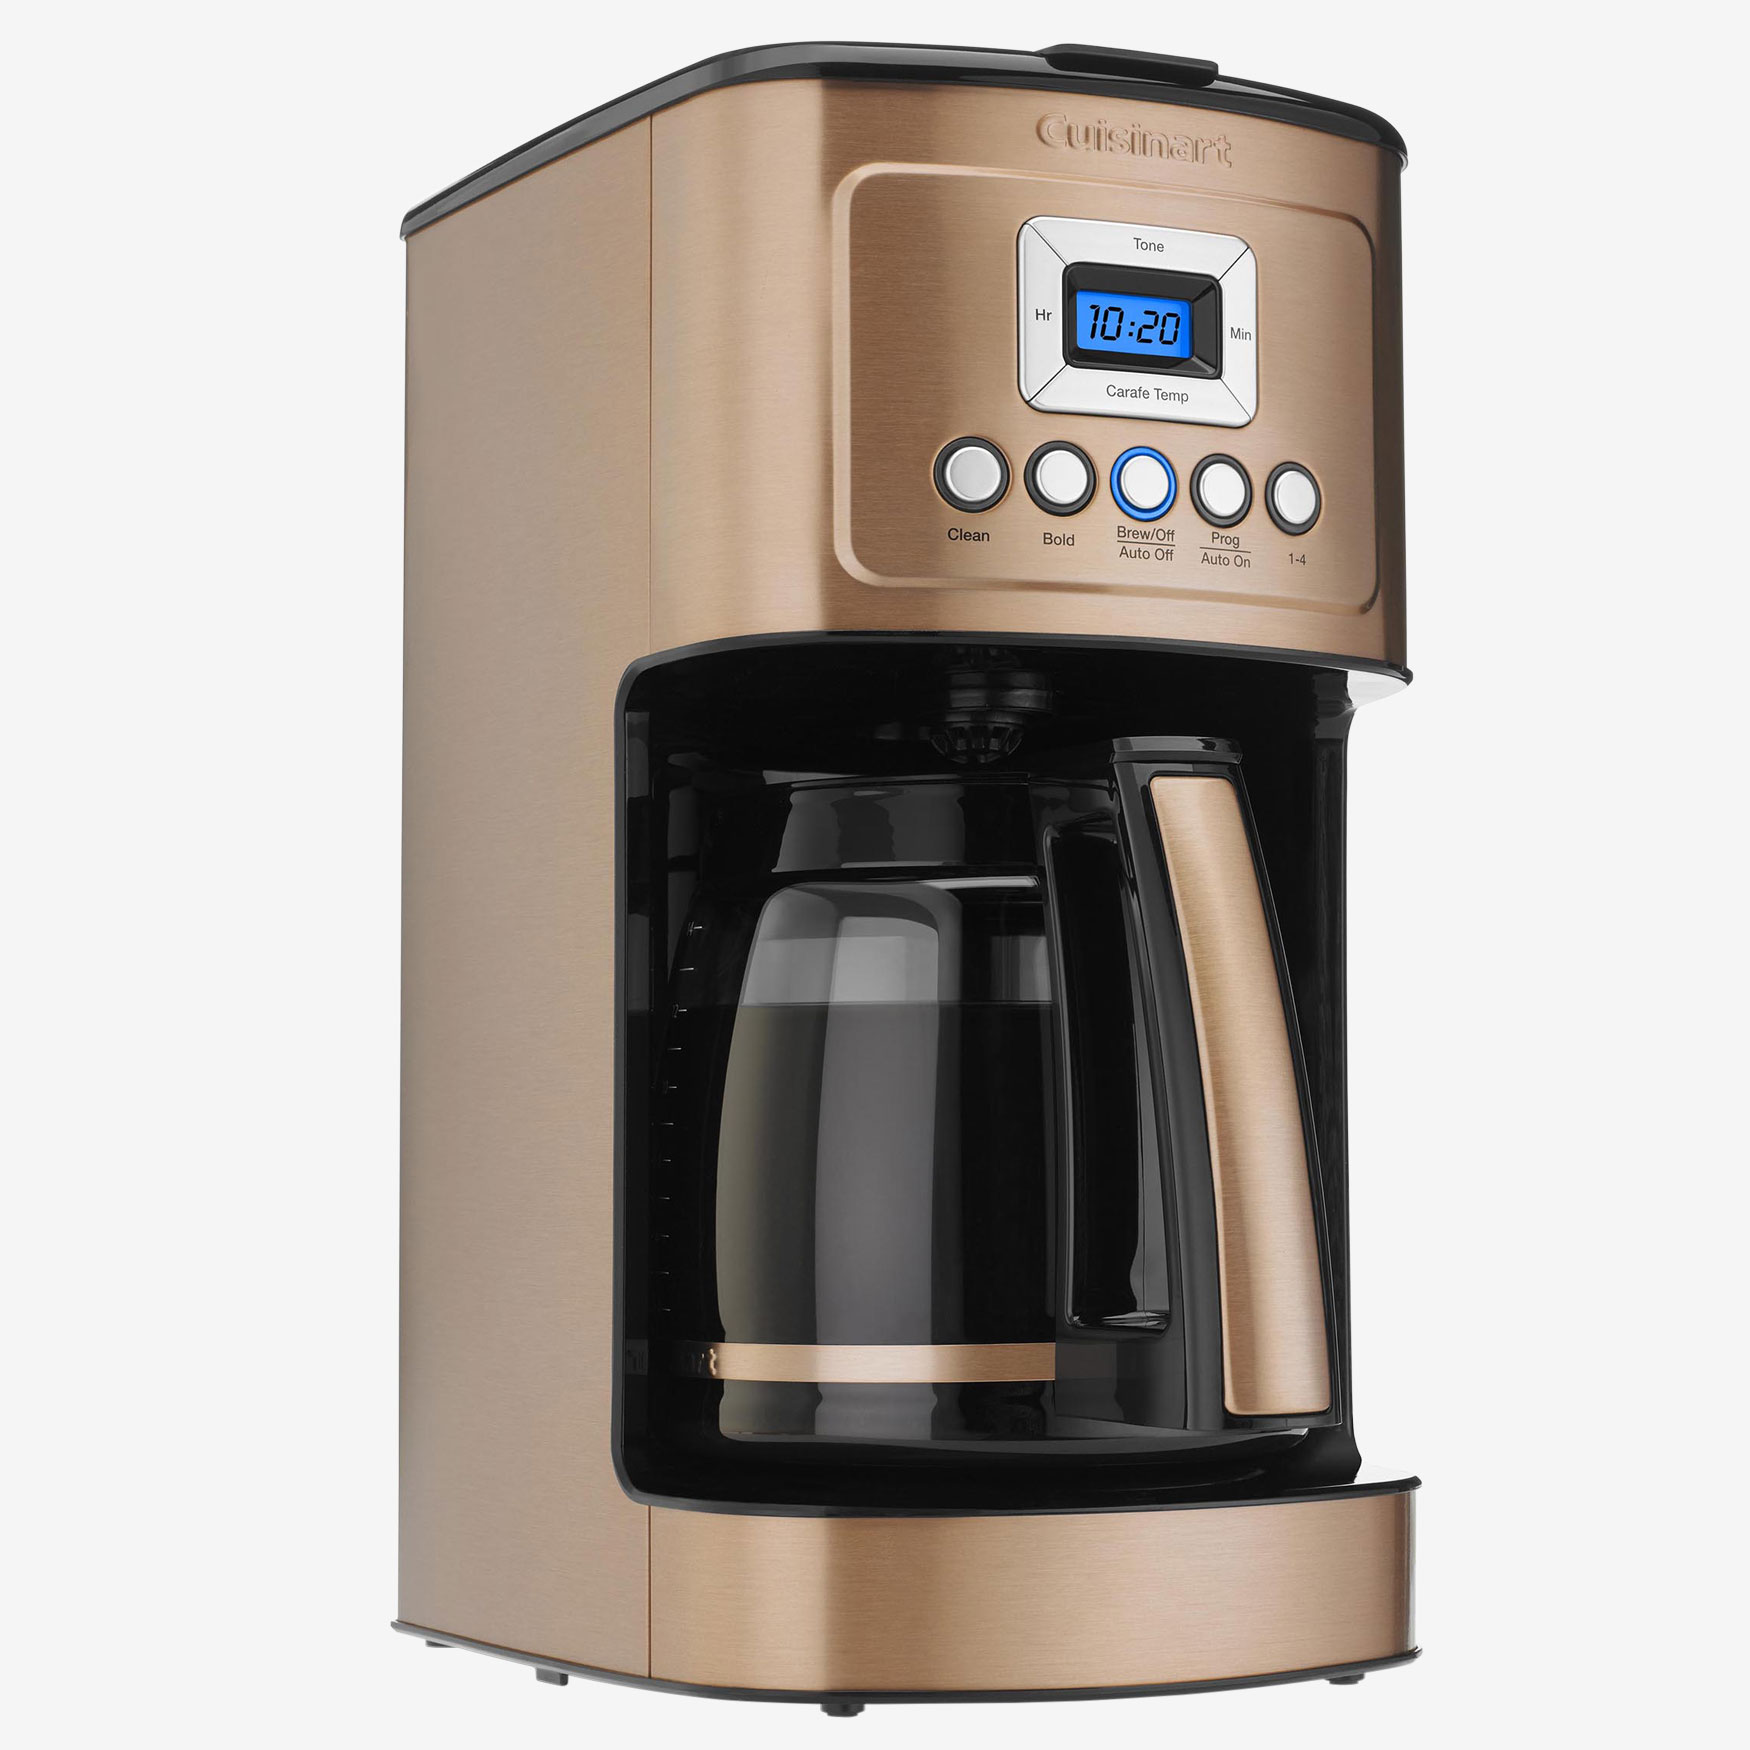 Cuisinart 14-Cup PerfectTemp Programmable Coffee Maker, COPPER